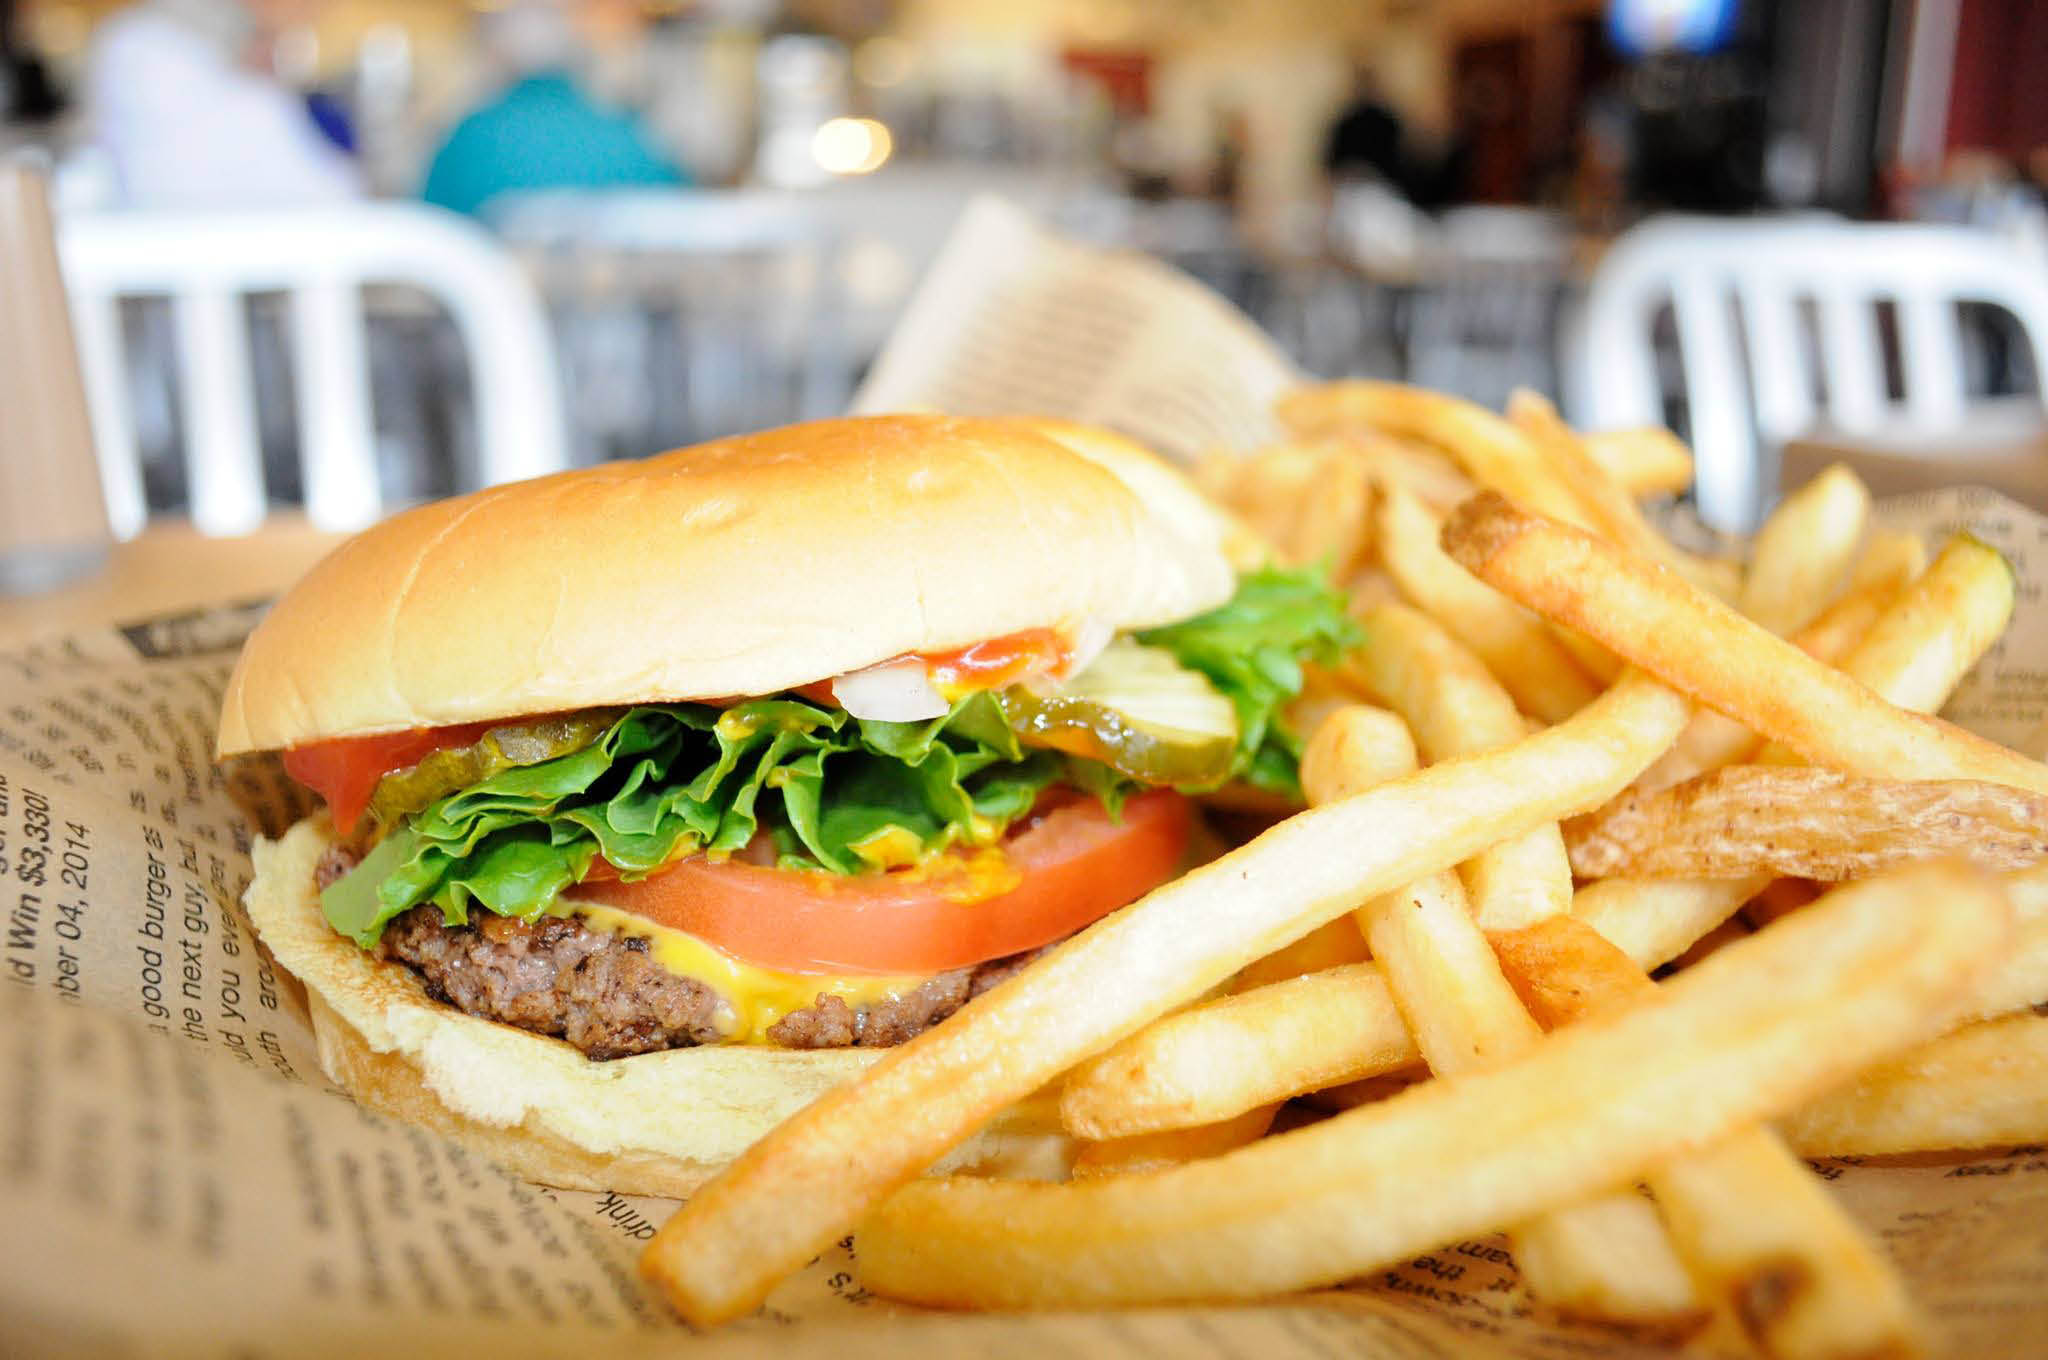 Juicy Wayback Burger and fries make a great lunch or dinner